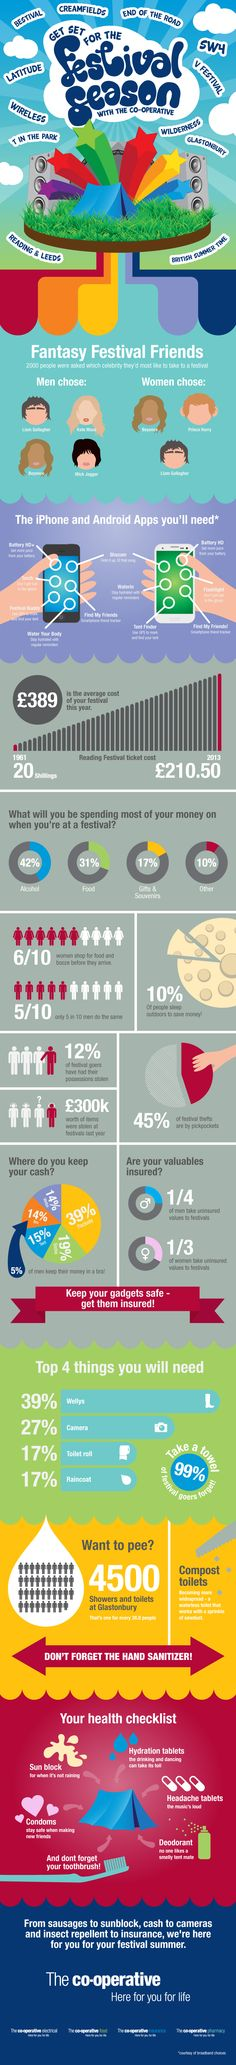 Festival Season Infographic from The Co-operative Group